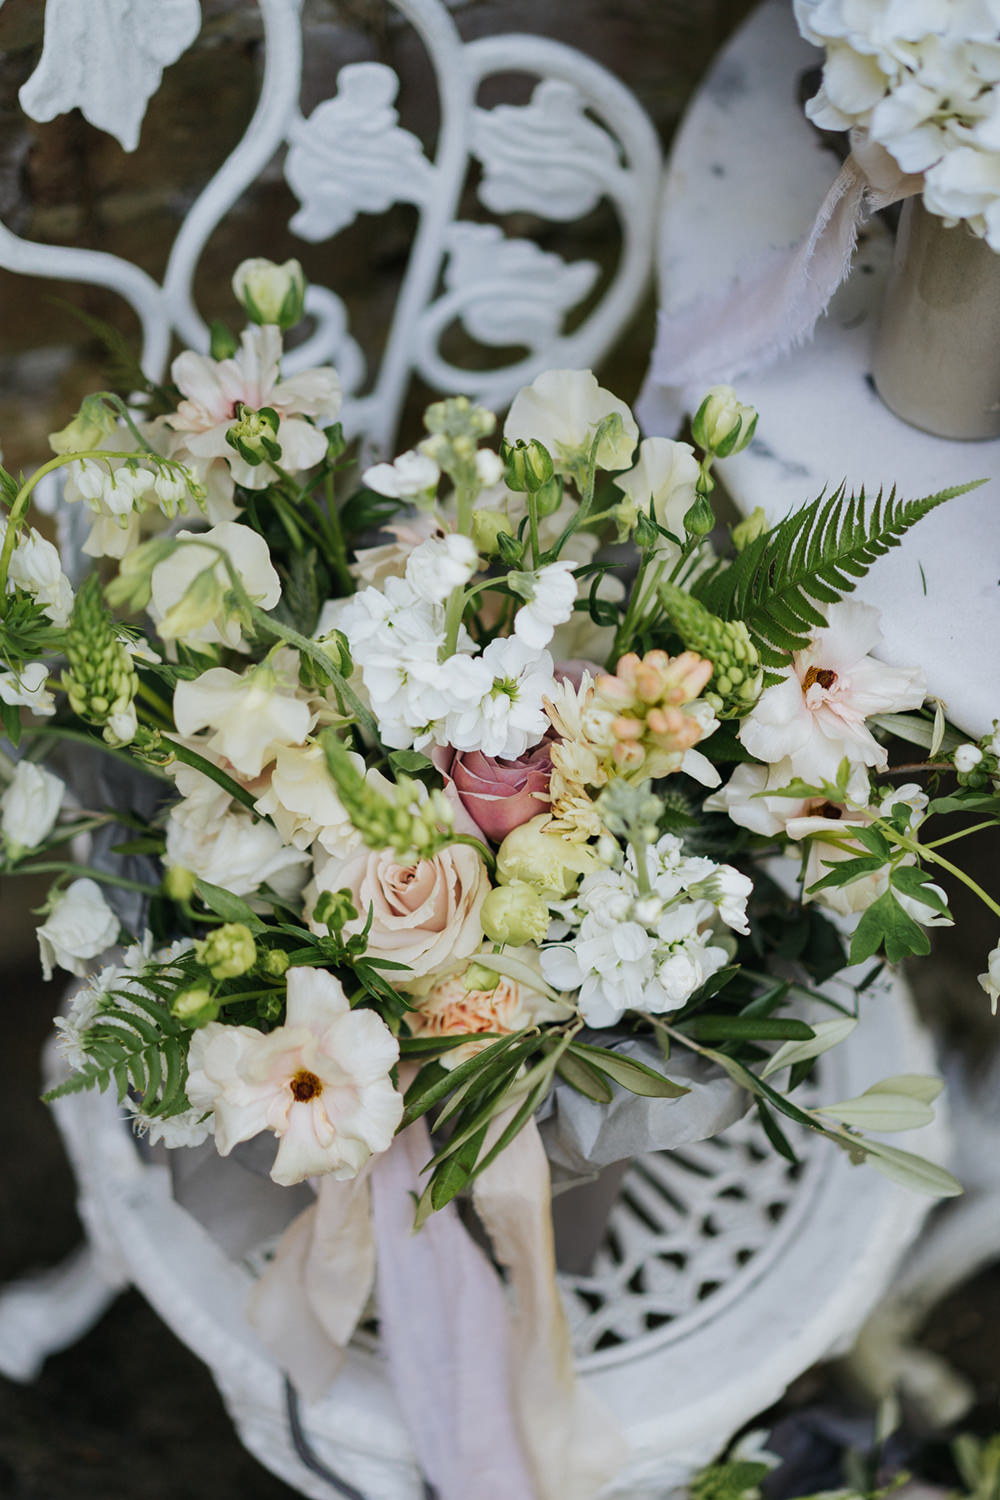 Bouquet Flowers Bride Bridal Wild Natural Dusky Pink Ribbon Peony Stocks Rose Greenery Foliage Greenhouse Wedding Kit Myers Photography